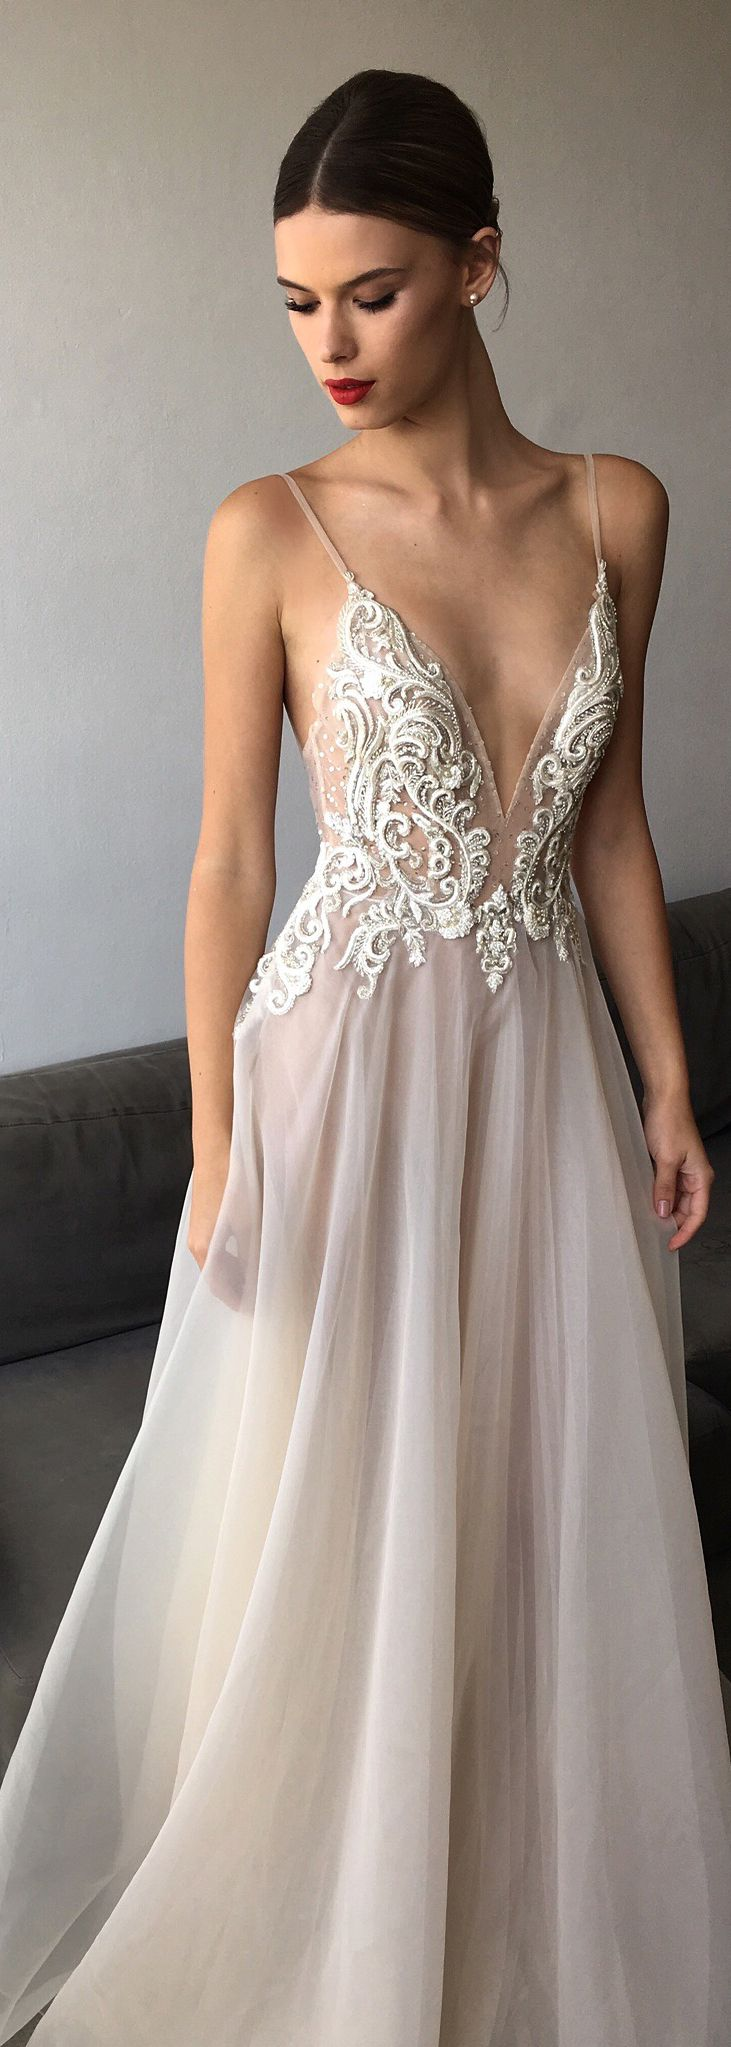 Evening Wedding Dresses Pinterest 49